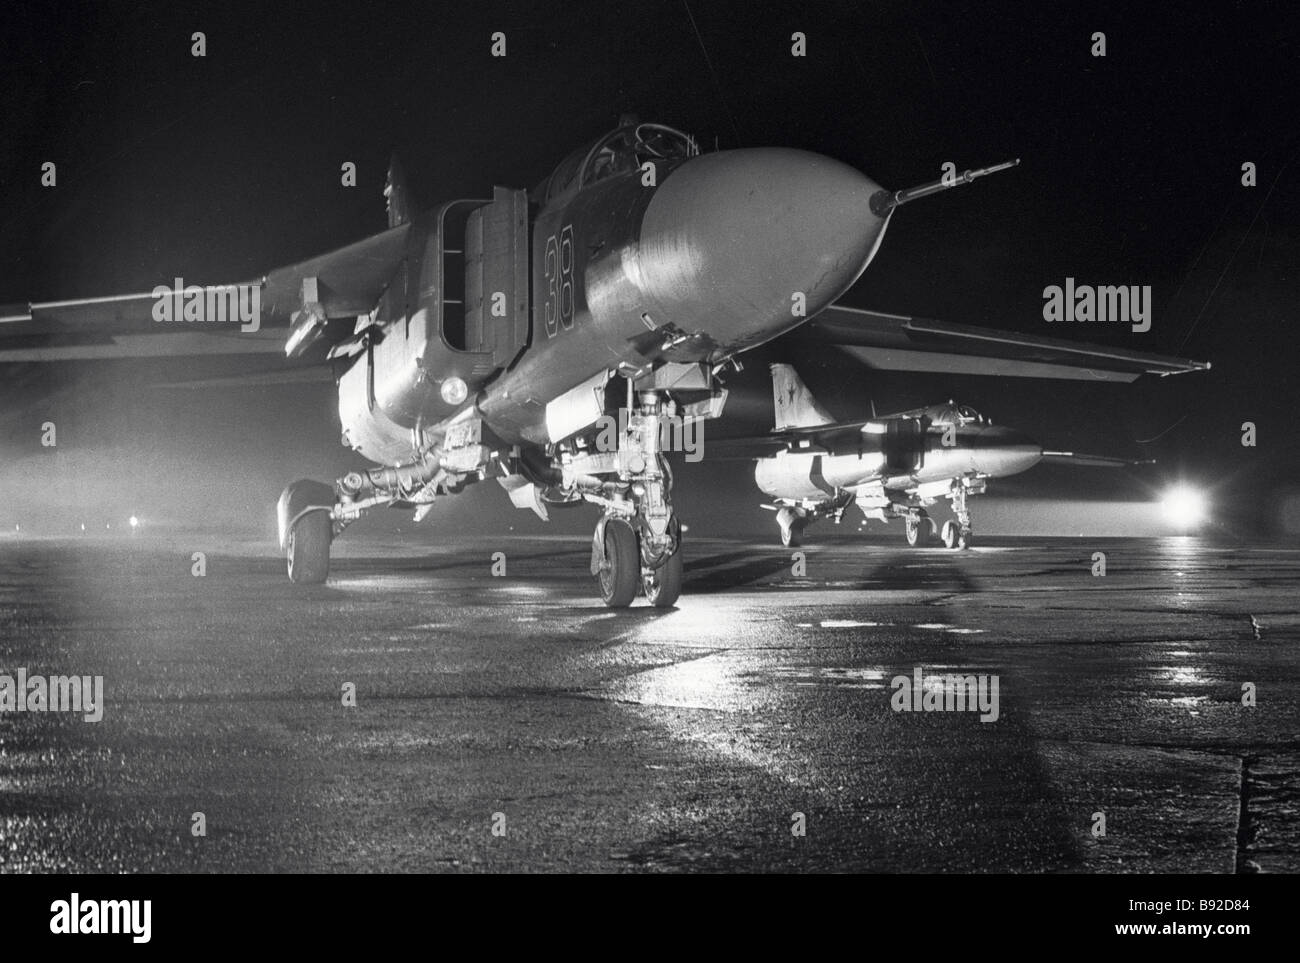 An echelon of MiG 23 Flogger fighters gearing up for a night training flight - Stock Image